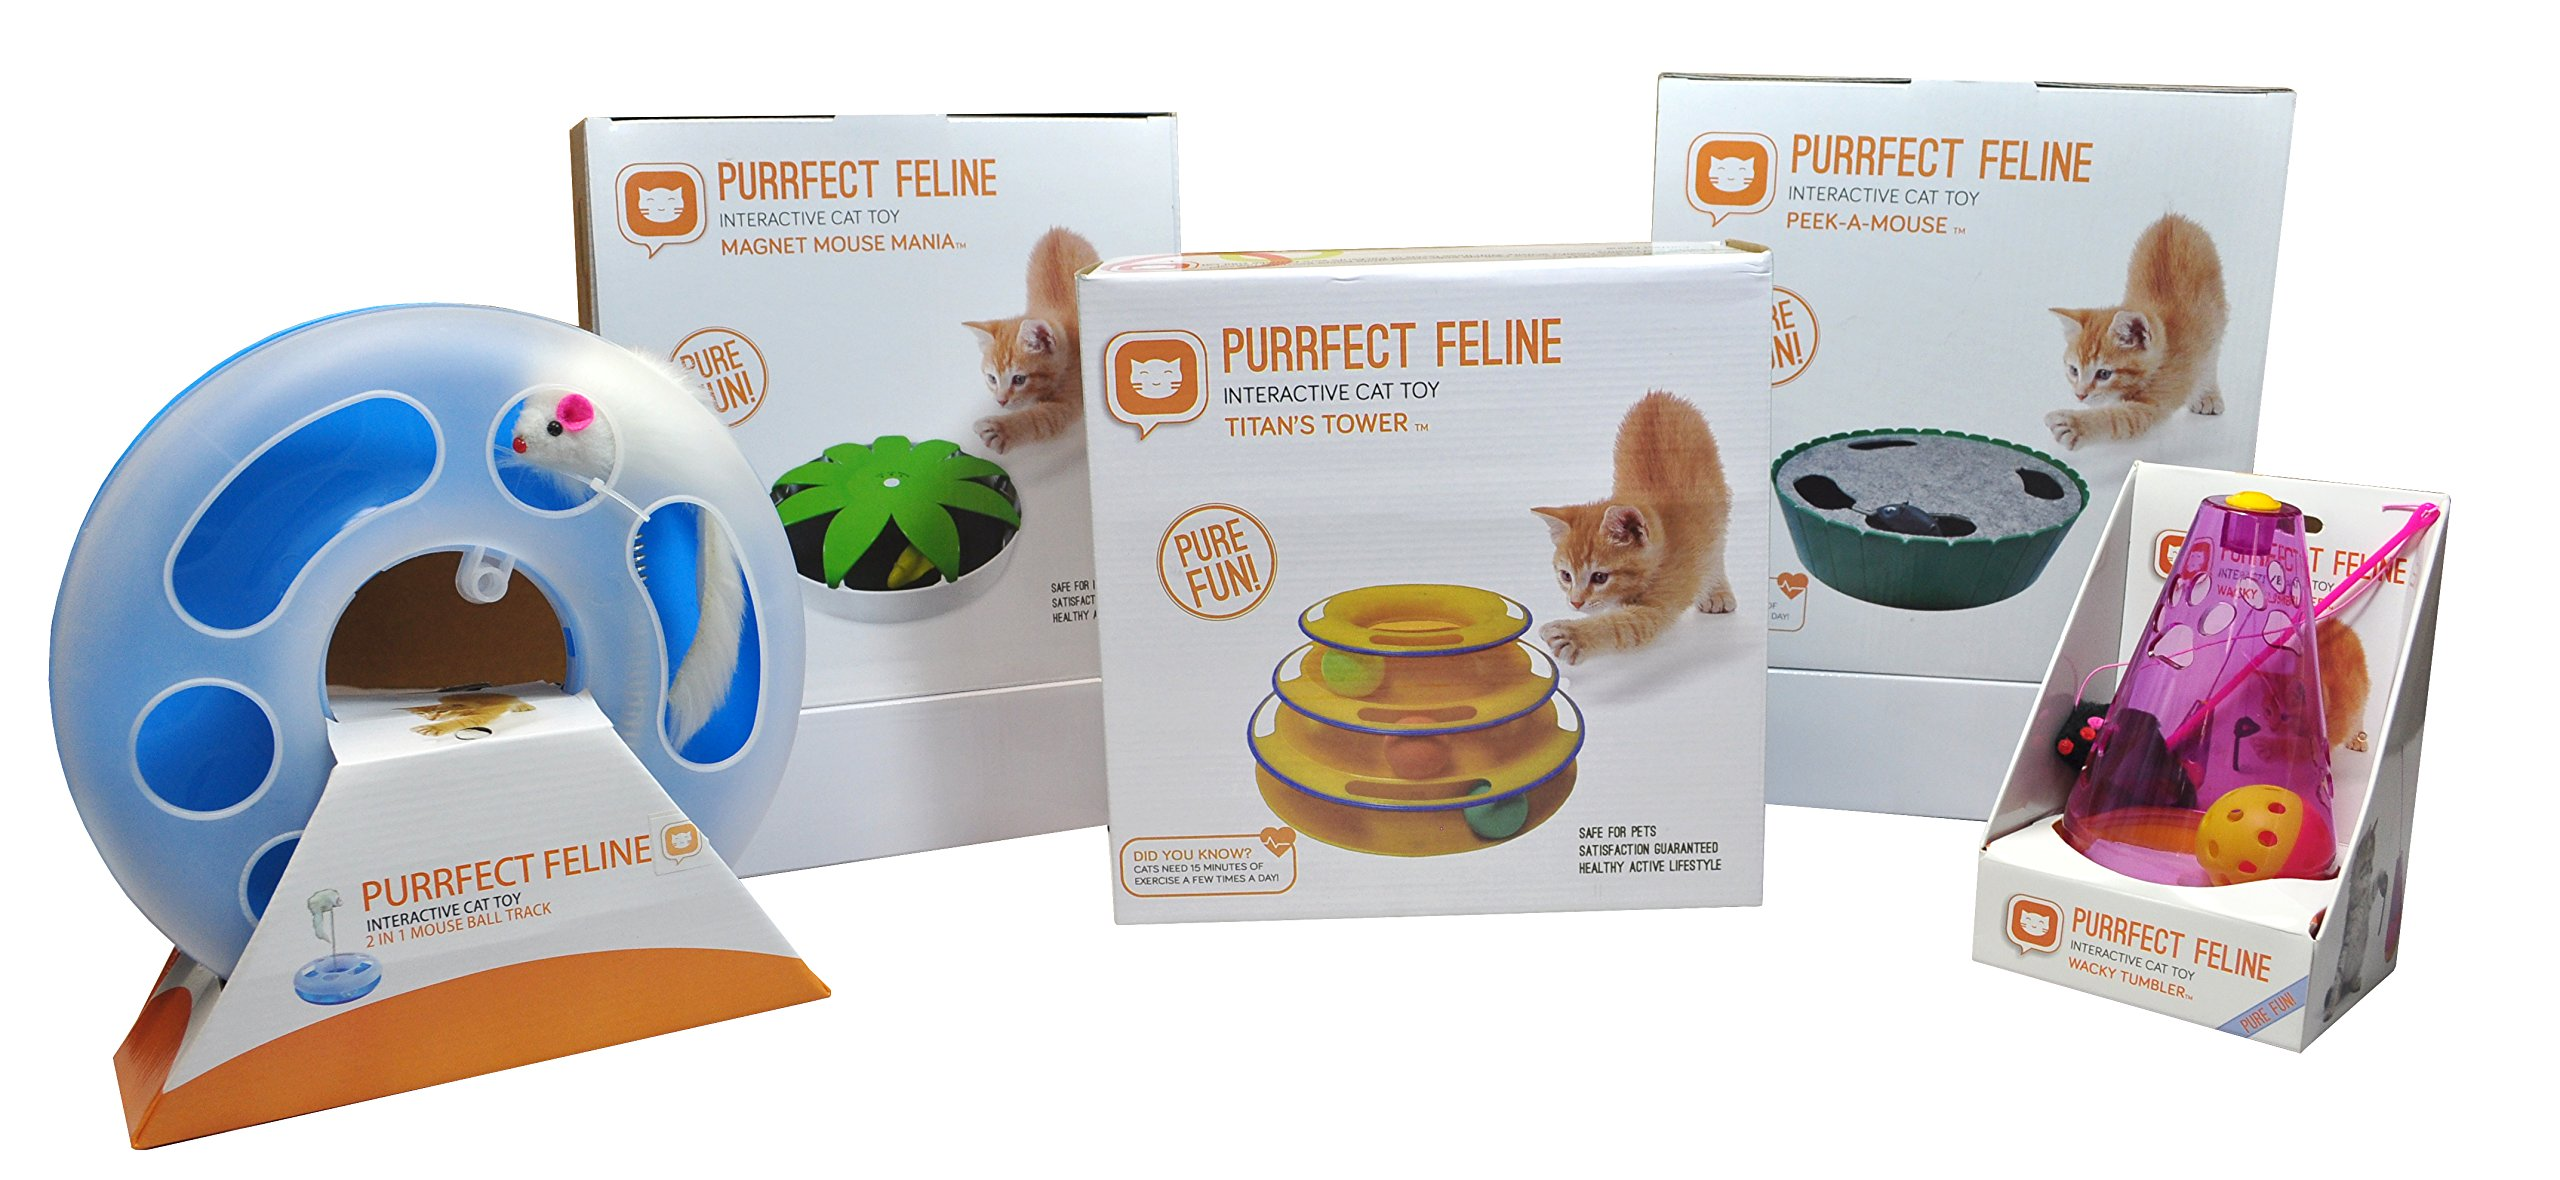 Purrfect Feline Titan's Tower - New Safer Bar Design, Interactive Cat Ball Toy, Exerciser Game, Teaser, Anti-Slip, Active Healthy Lifestyle, Suitable for Multiple Cats (Orange) by Purrfect Feline (Image #4)